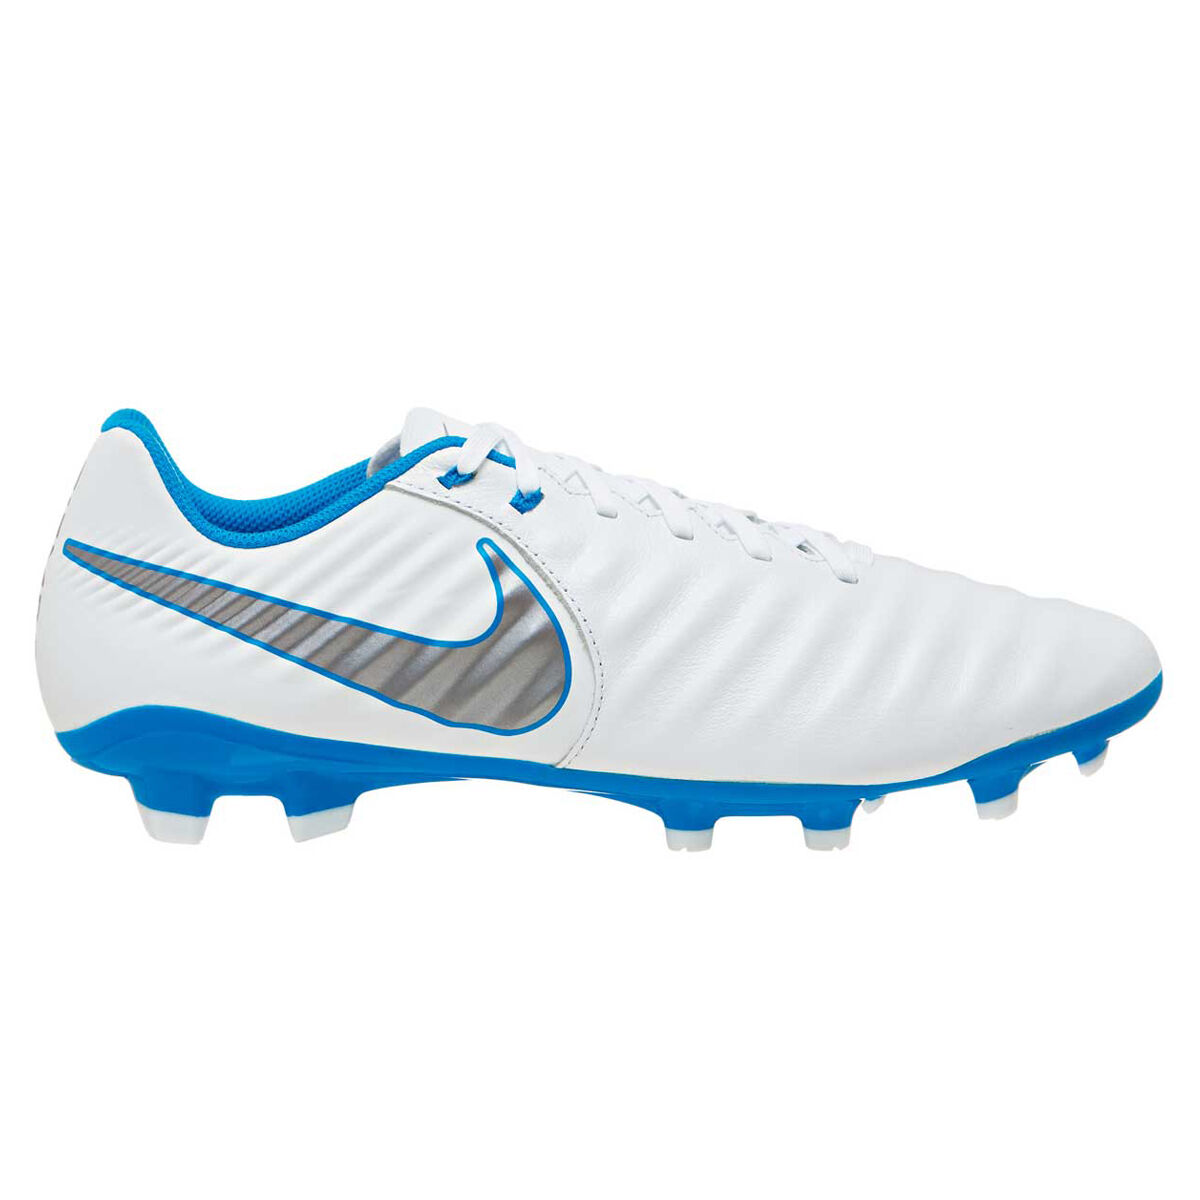 77b172b87052 ... official nike tiempo legend vii academy mens football boots white grey  us 12 white b651e 8bf0f